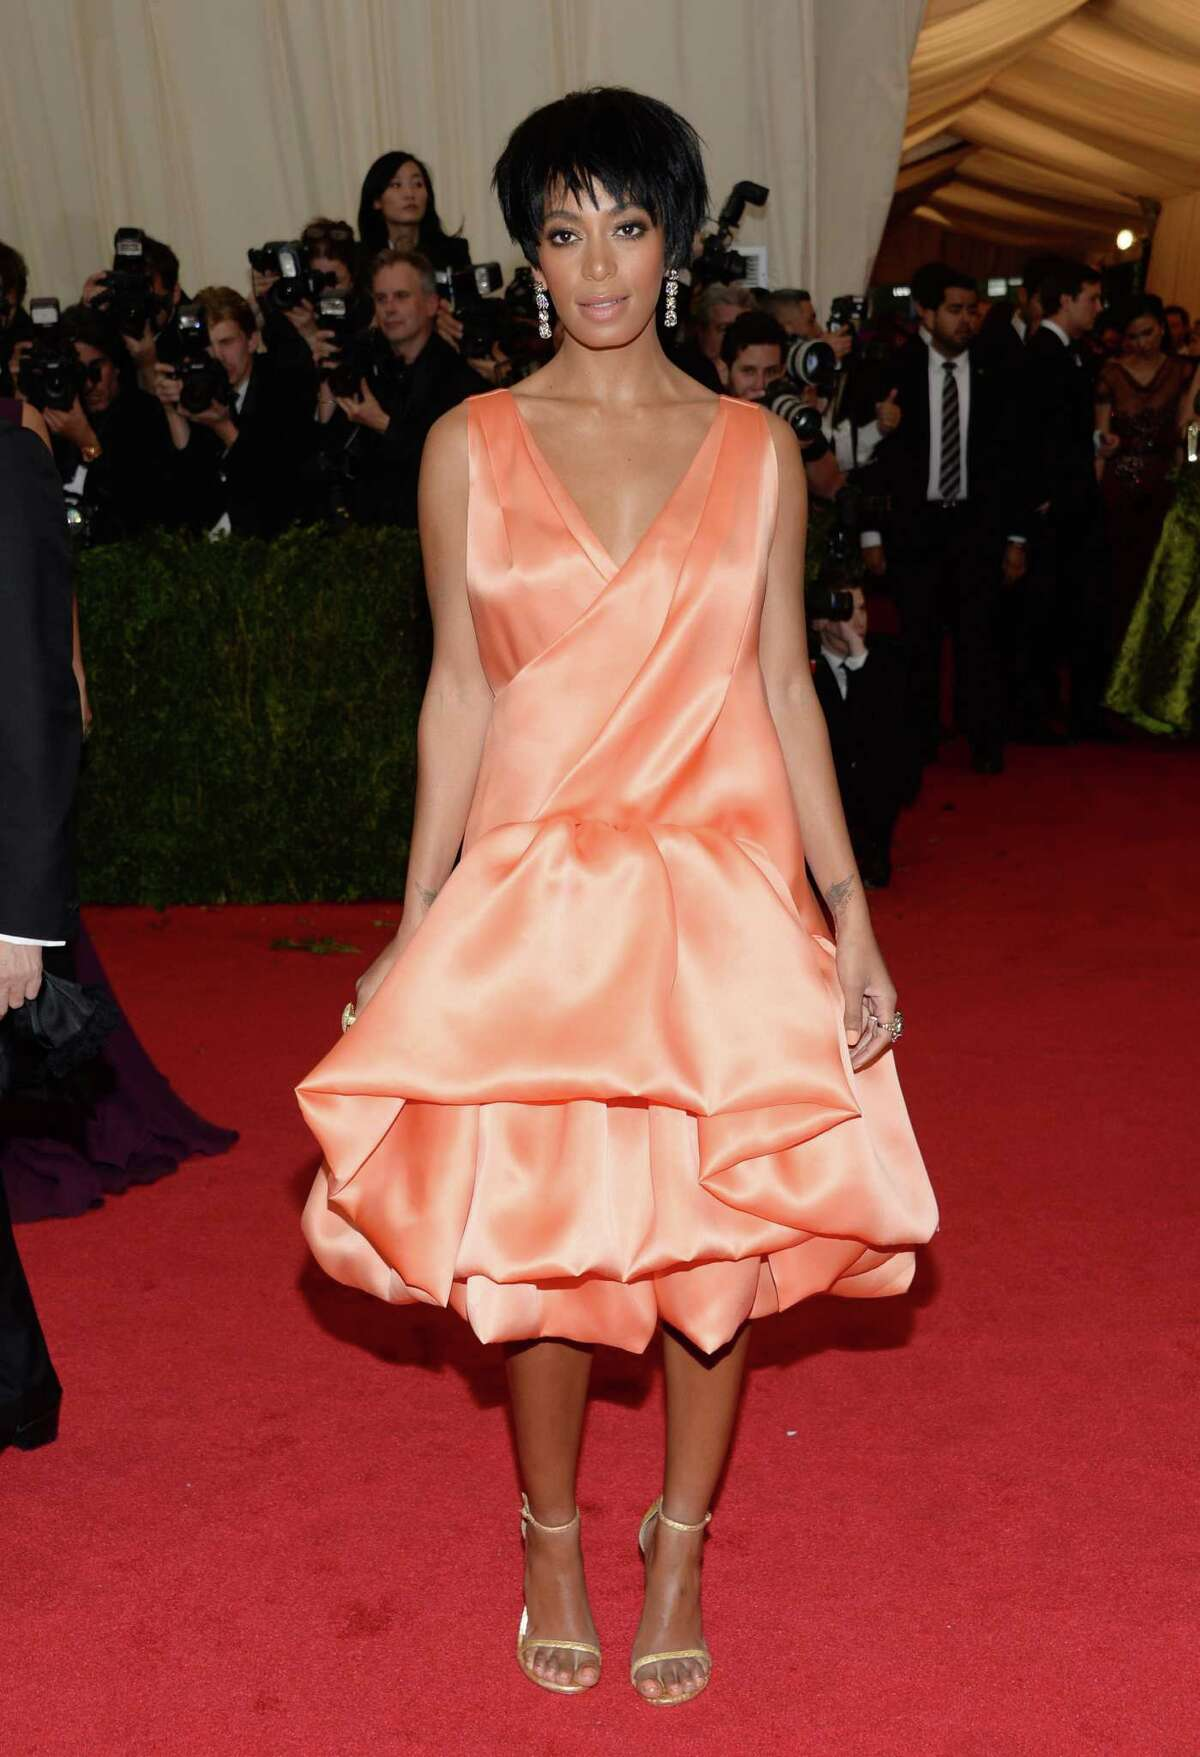 """FILE - This May 5, 2014 file photo shows Solange Knowles, sister of Beyonce Knowles, at The Metropolitan Museum of Art's Costume Institute benefit gala celebrating """"Charles James: Beyond Fashion"""" in New York. The Standard Hotel in New York City says it is investigating the leak of a security video that appears to show Beyonce's sister, Solange, attacking Jay Z. Asked about the video on Monday, May 12, by The Associated Press, the hotel issued a statement saying it is """"shocked and disappointed that there was a clear breach of our security system."""" (Photo by Evan Agostini/Invision/AP)"""